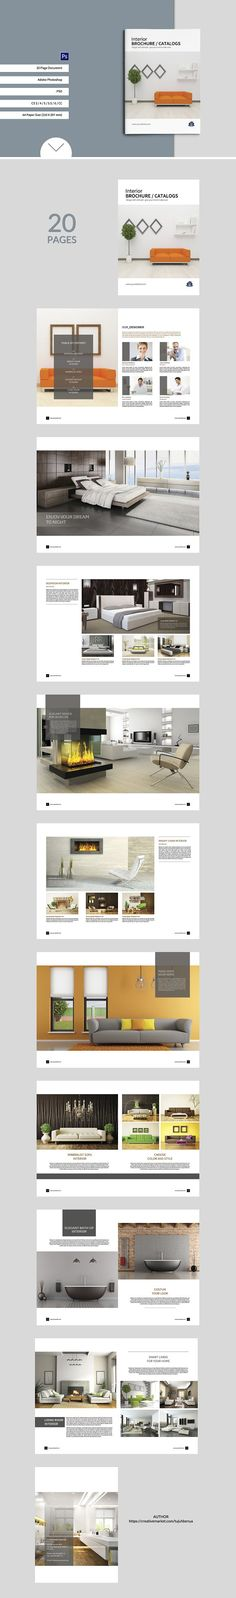 Interior Design Brochure A4 Design Template - Corporate Brochures